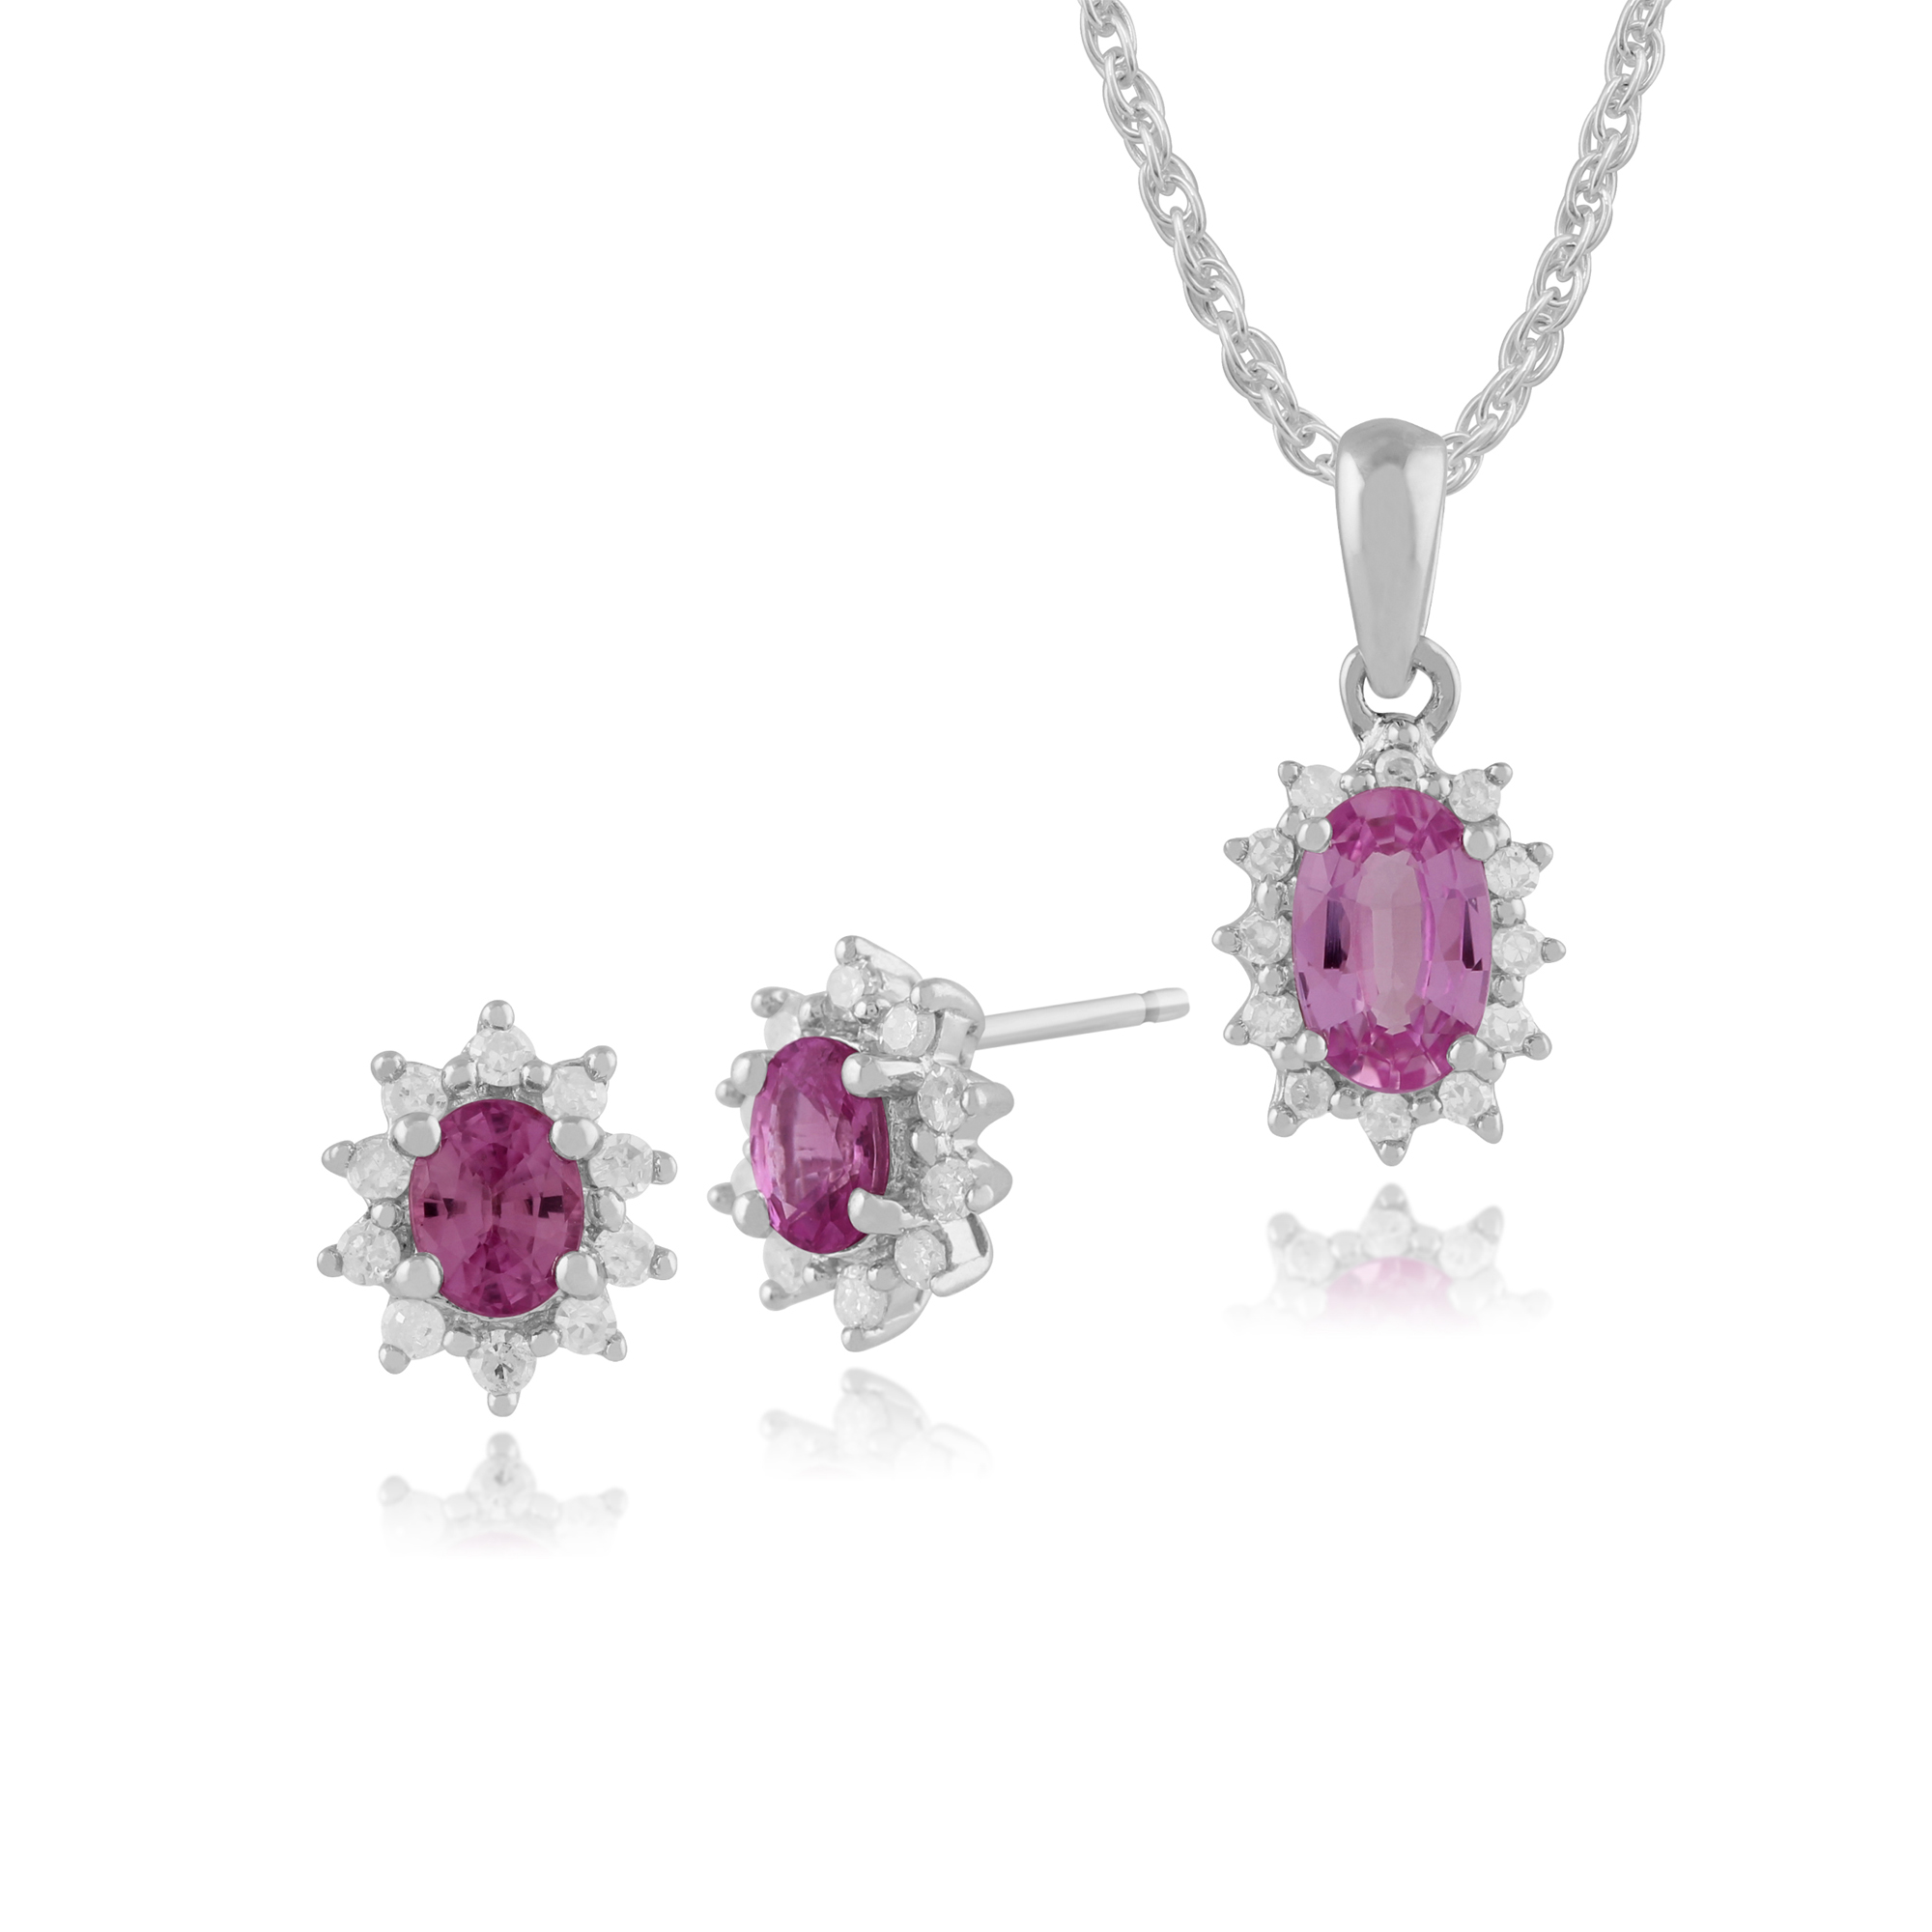 9ct White Gold Pink Sapphire & Diamond Stud Earrings & 45cm Necklace Set